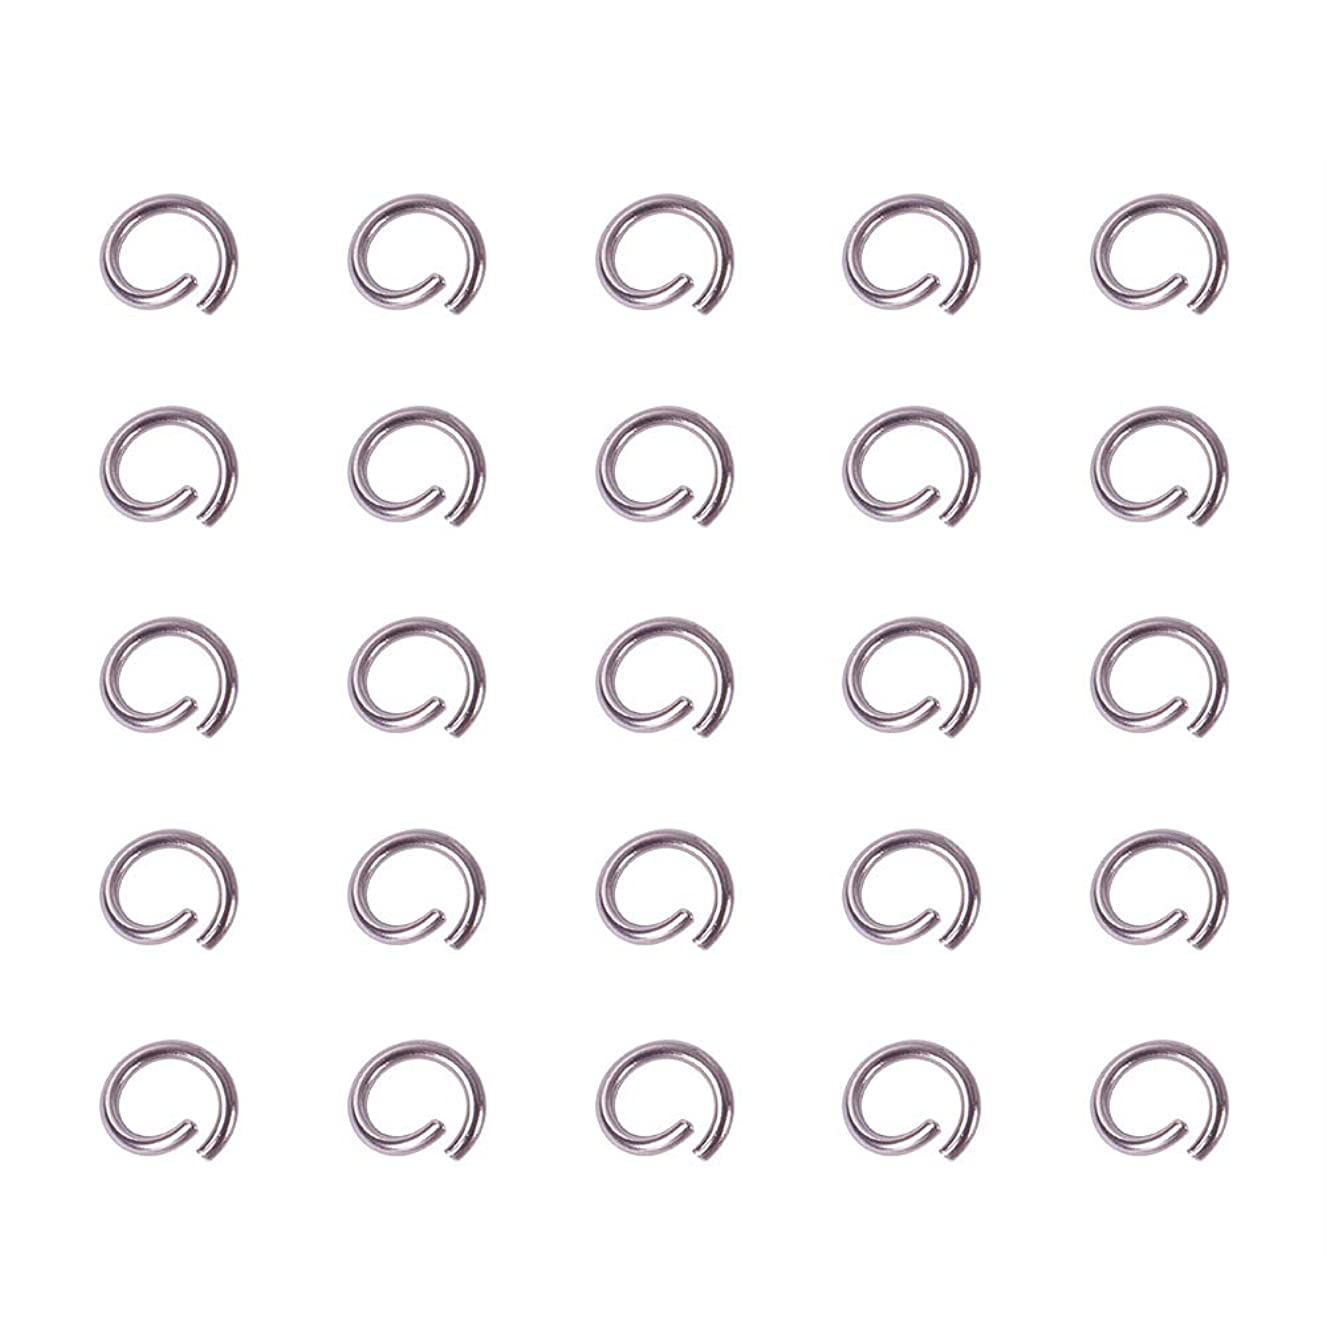 PandaHall Elite About 480 Pcs 304 Stainless Steel Open Jump Rings Diameter 4mm Wire 21-Gauge for Jewelry Making